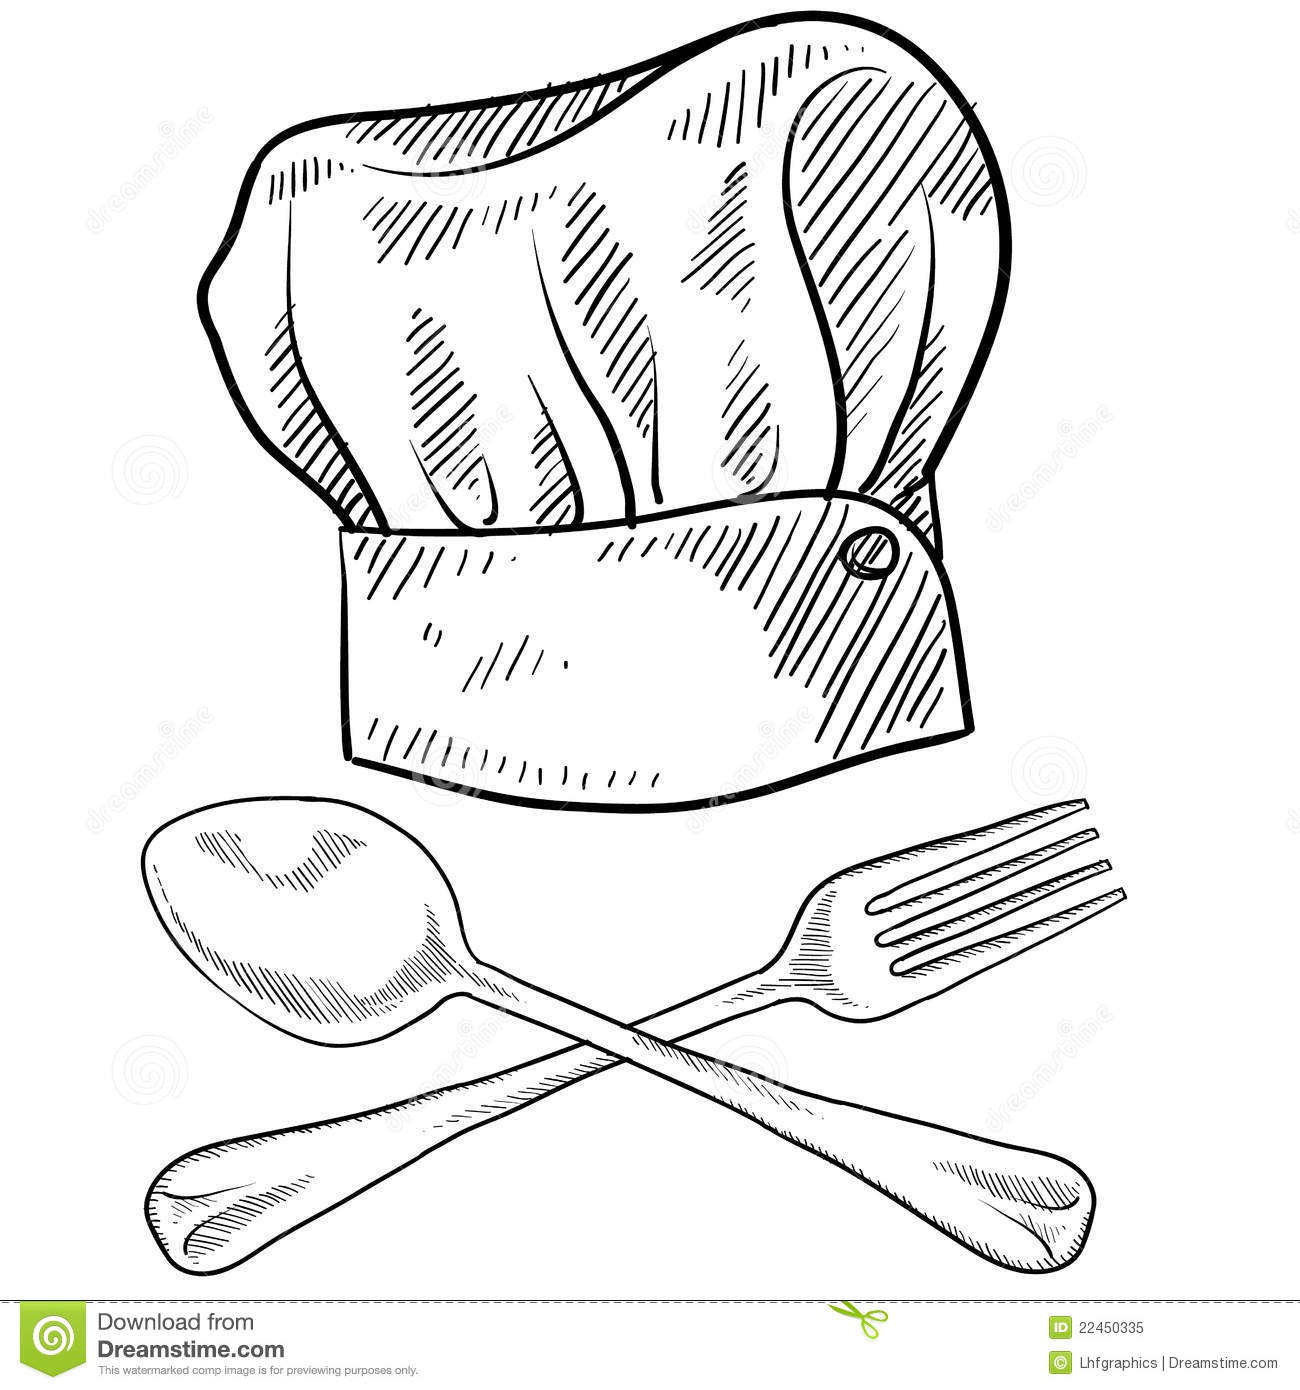 Image result for chef hat drawing